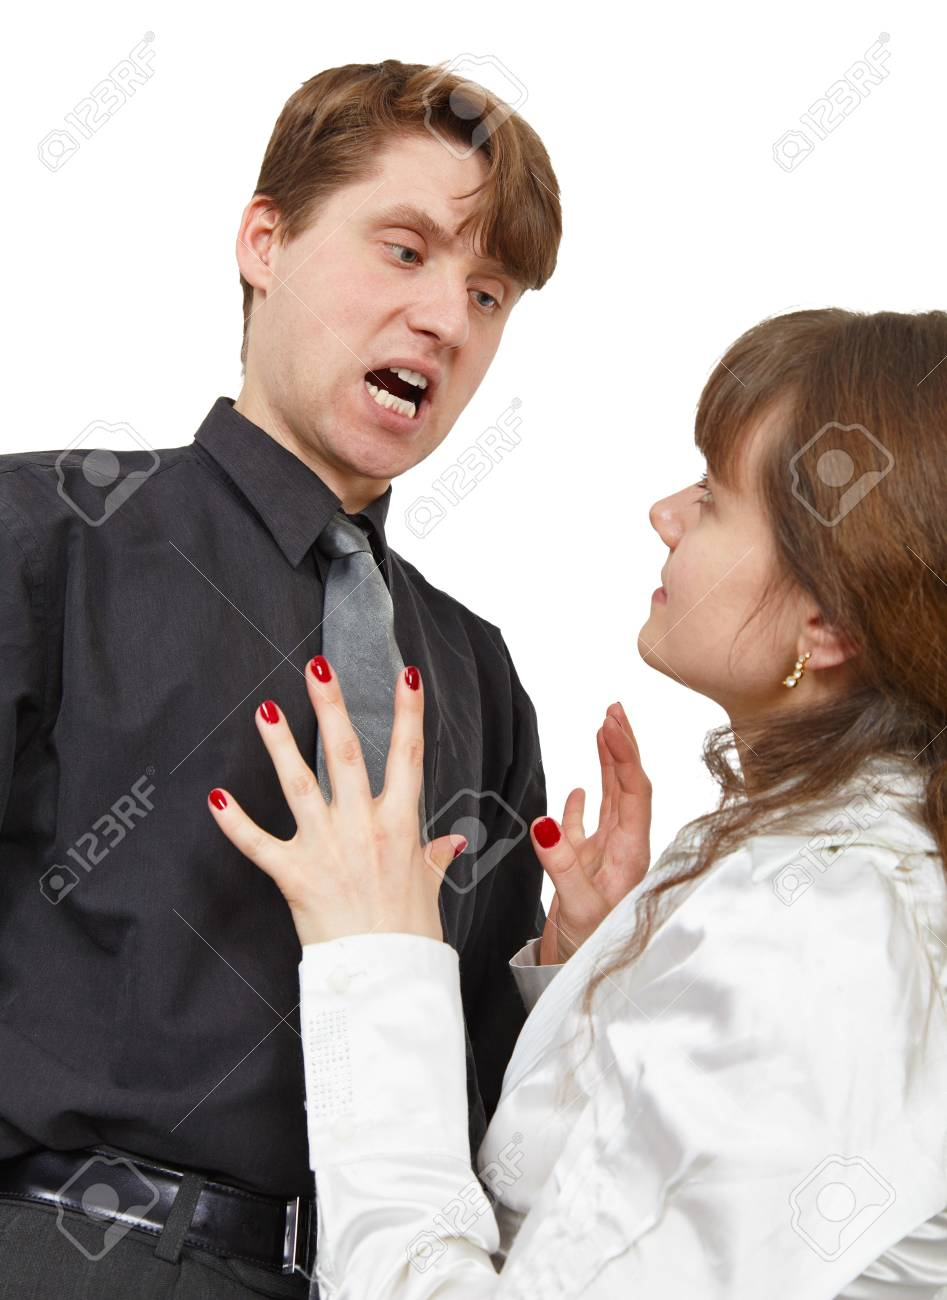 The man terribly shouts at the young woman is isolated on a white background Stock Photo - 7031626